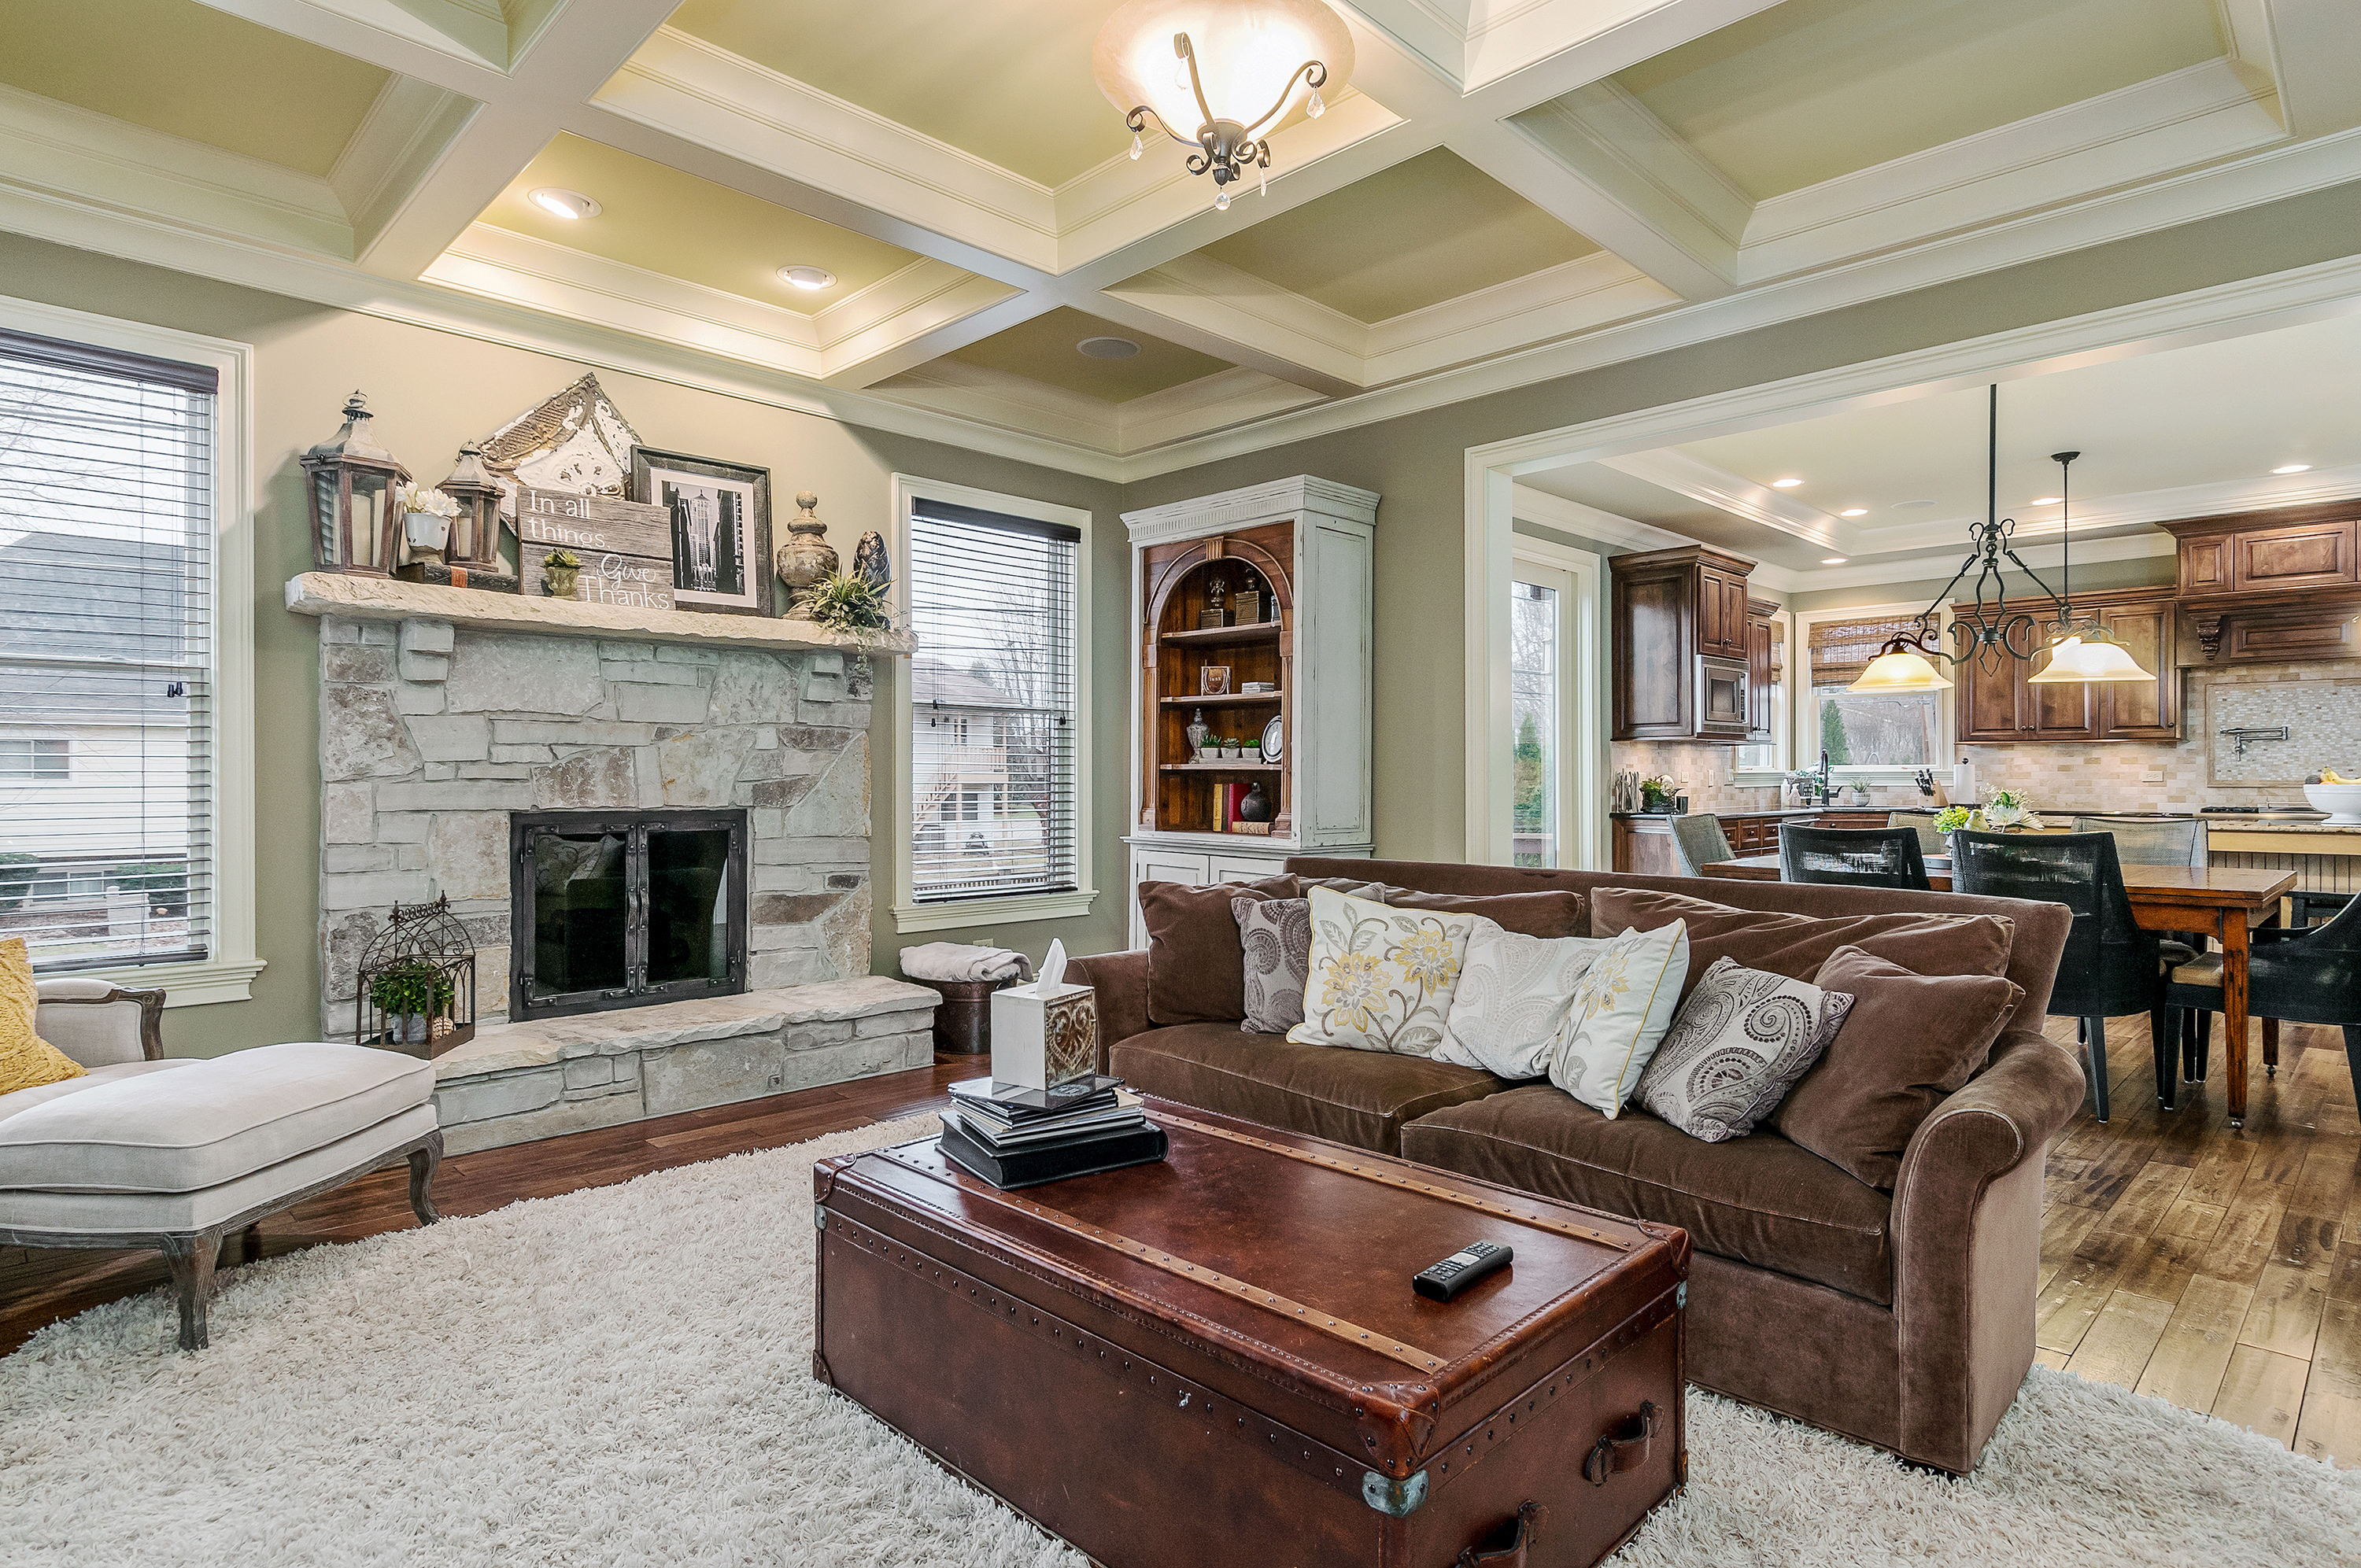 Potpourri of New Images. An upscale Naperville, Illinois living room